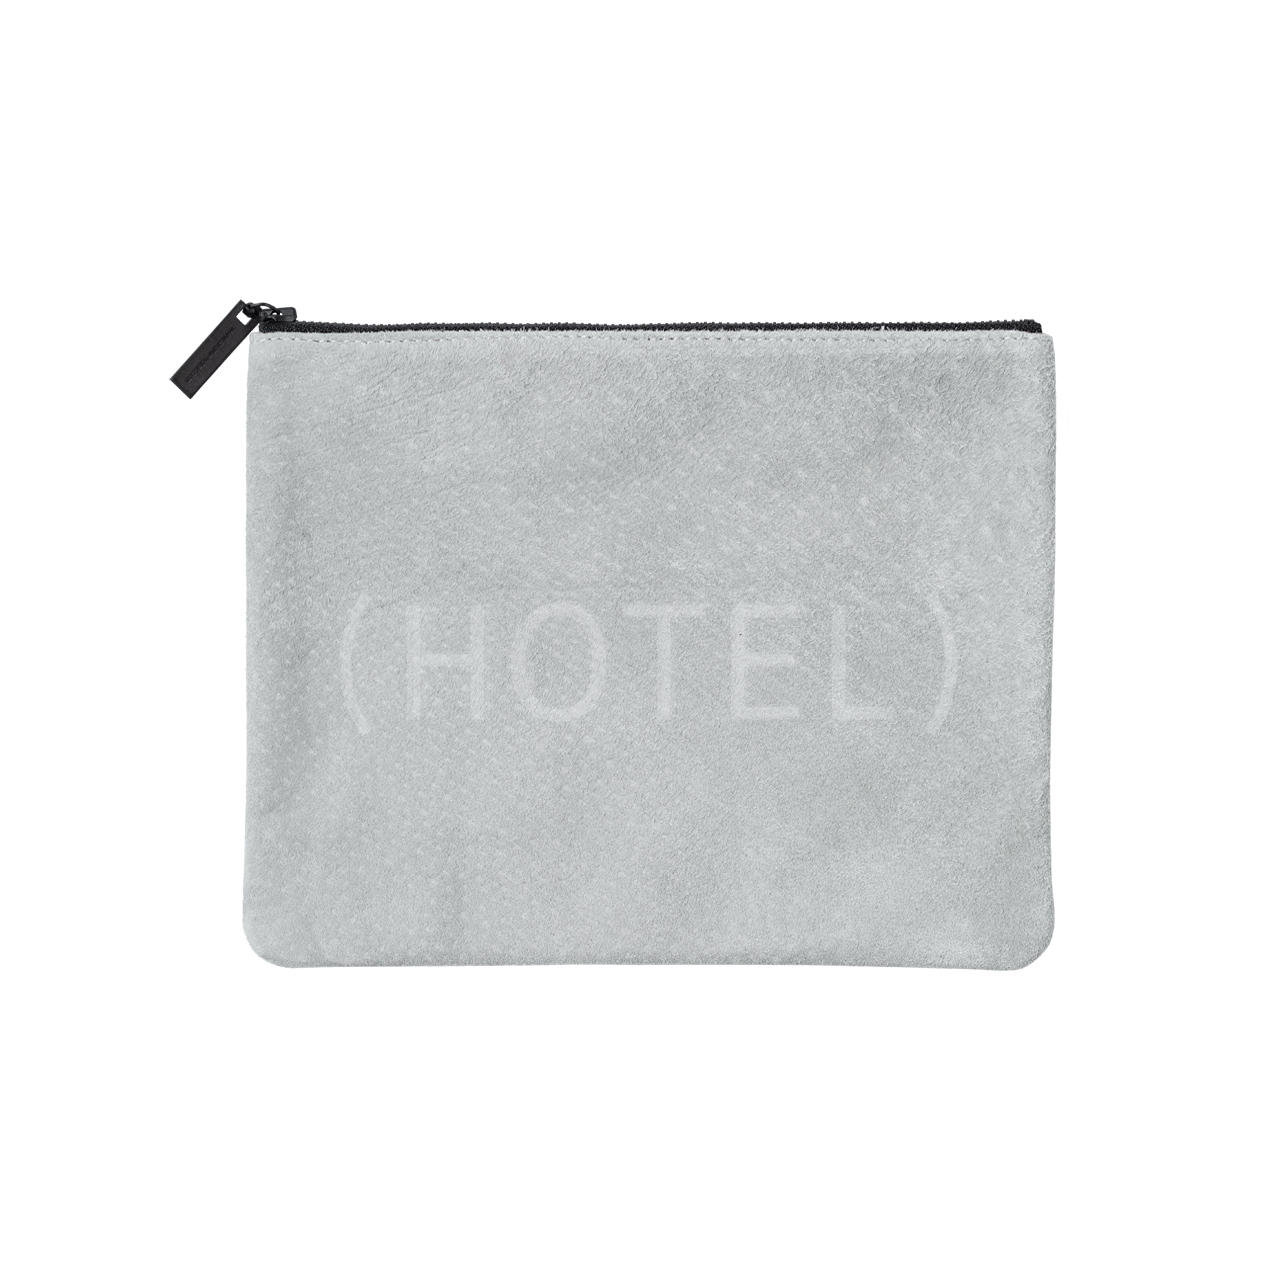 (HOTEL) Suede Pouch